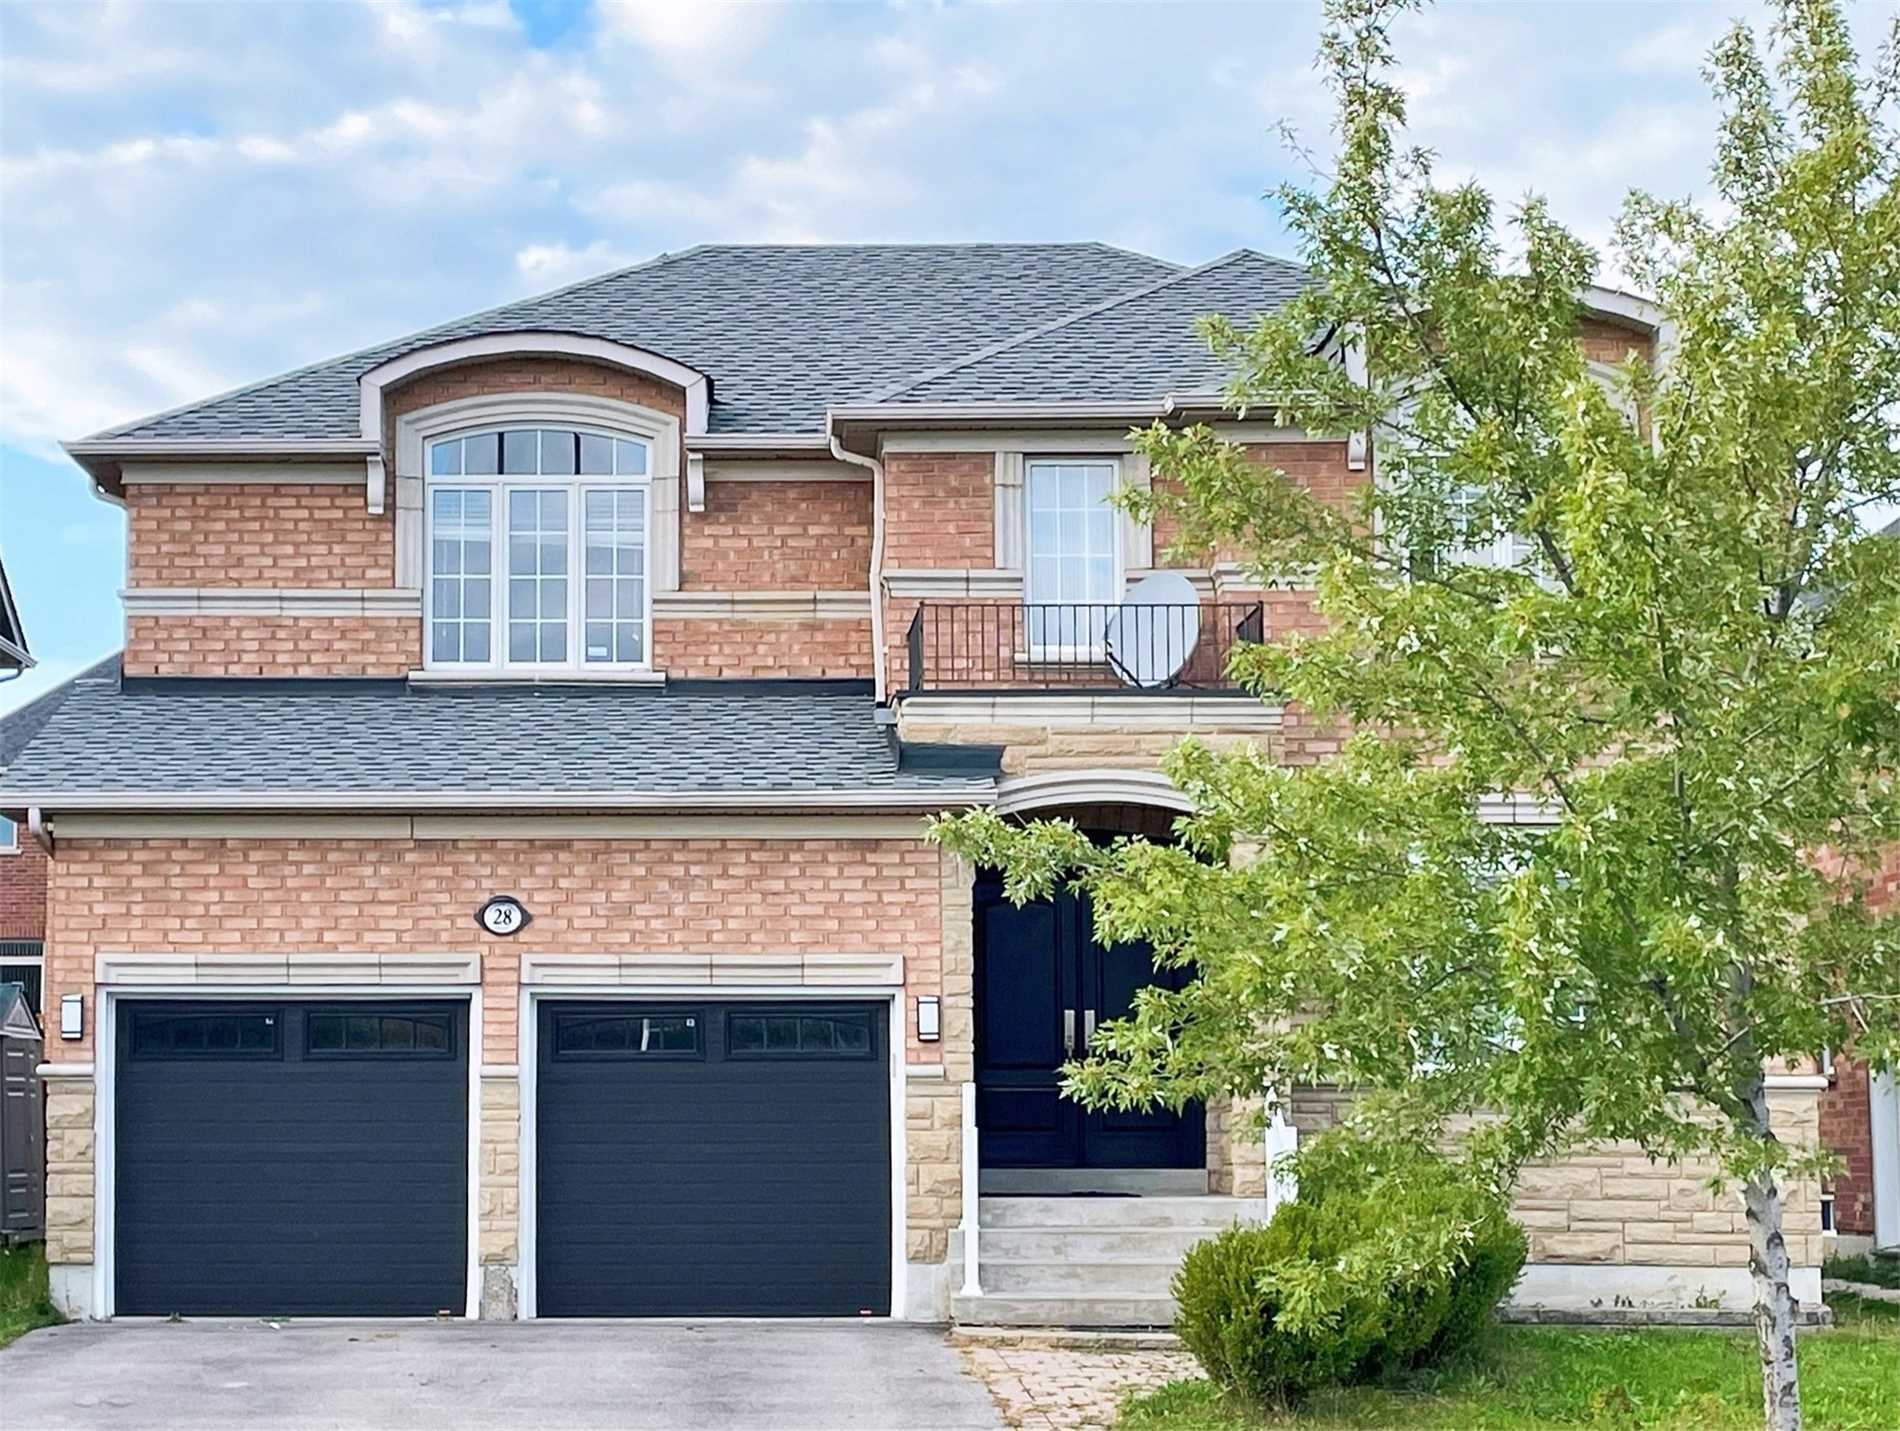 Detached house For Lease In Richmond Hill - 28 Jefferson Forest Dr, Richmond Hill, Ontario, Canada L4E4H9 , 4 Bedrooms Bedrooms, ,4 BathroomsBathrooms,Detached,For Lease,Jefferson Forest